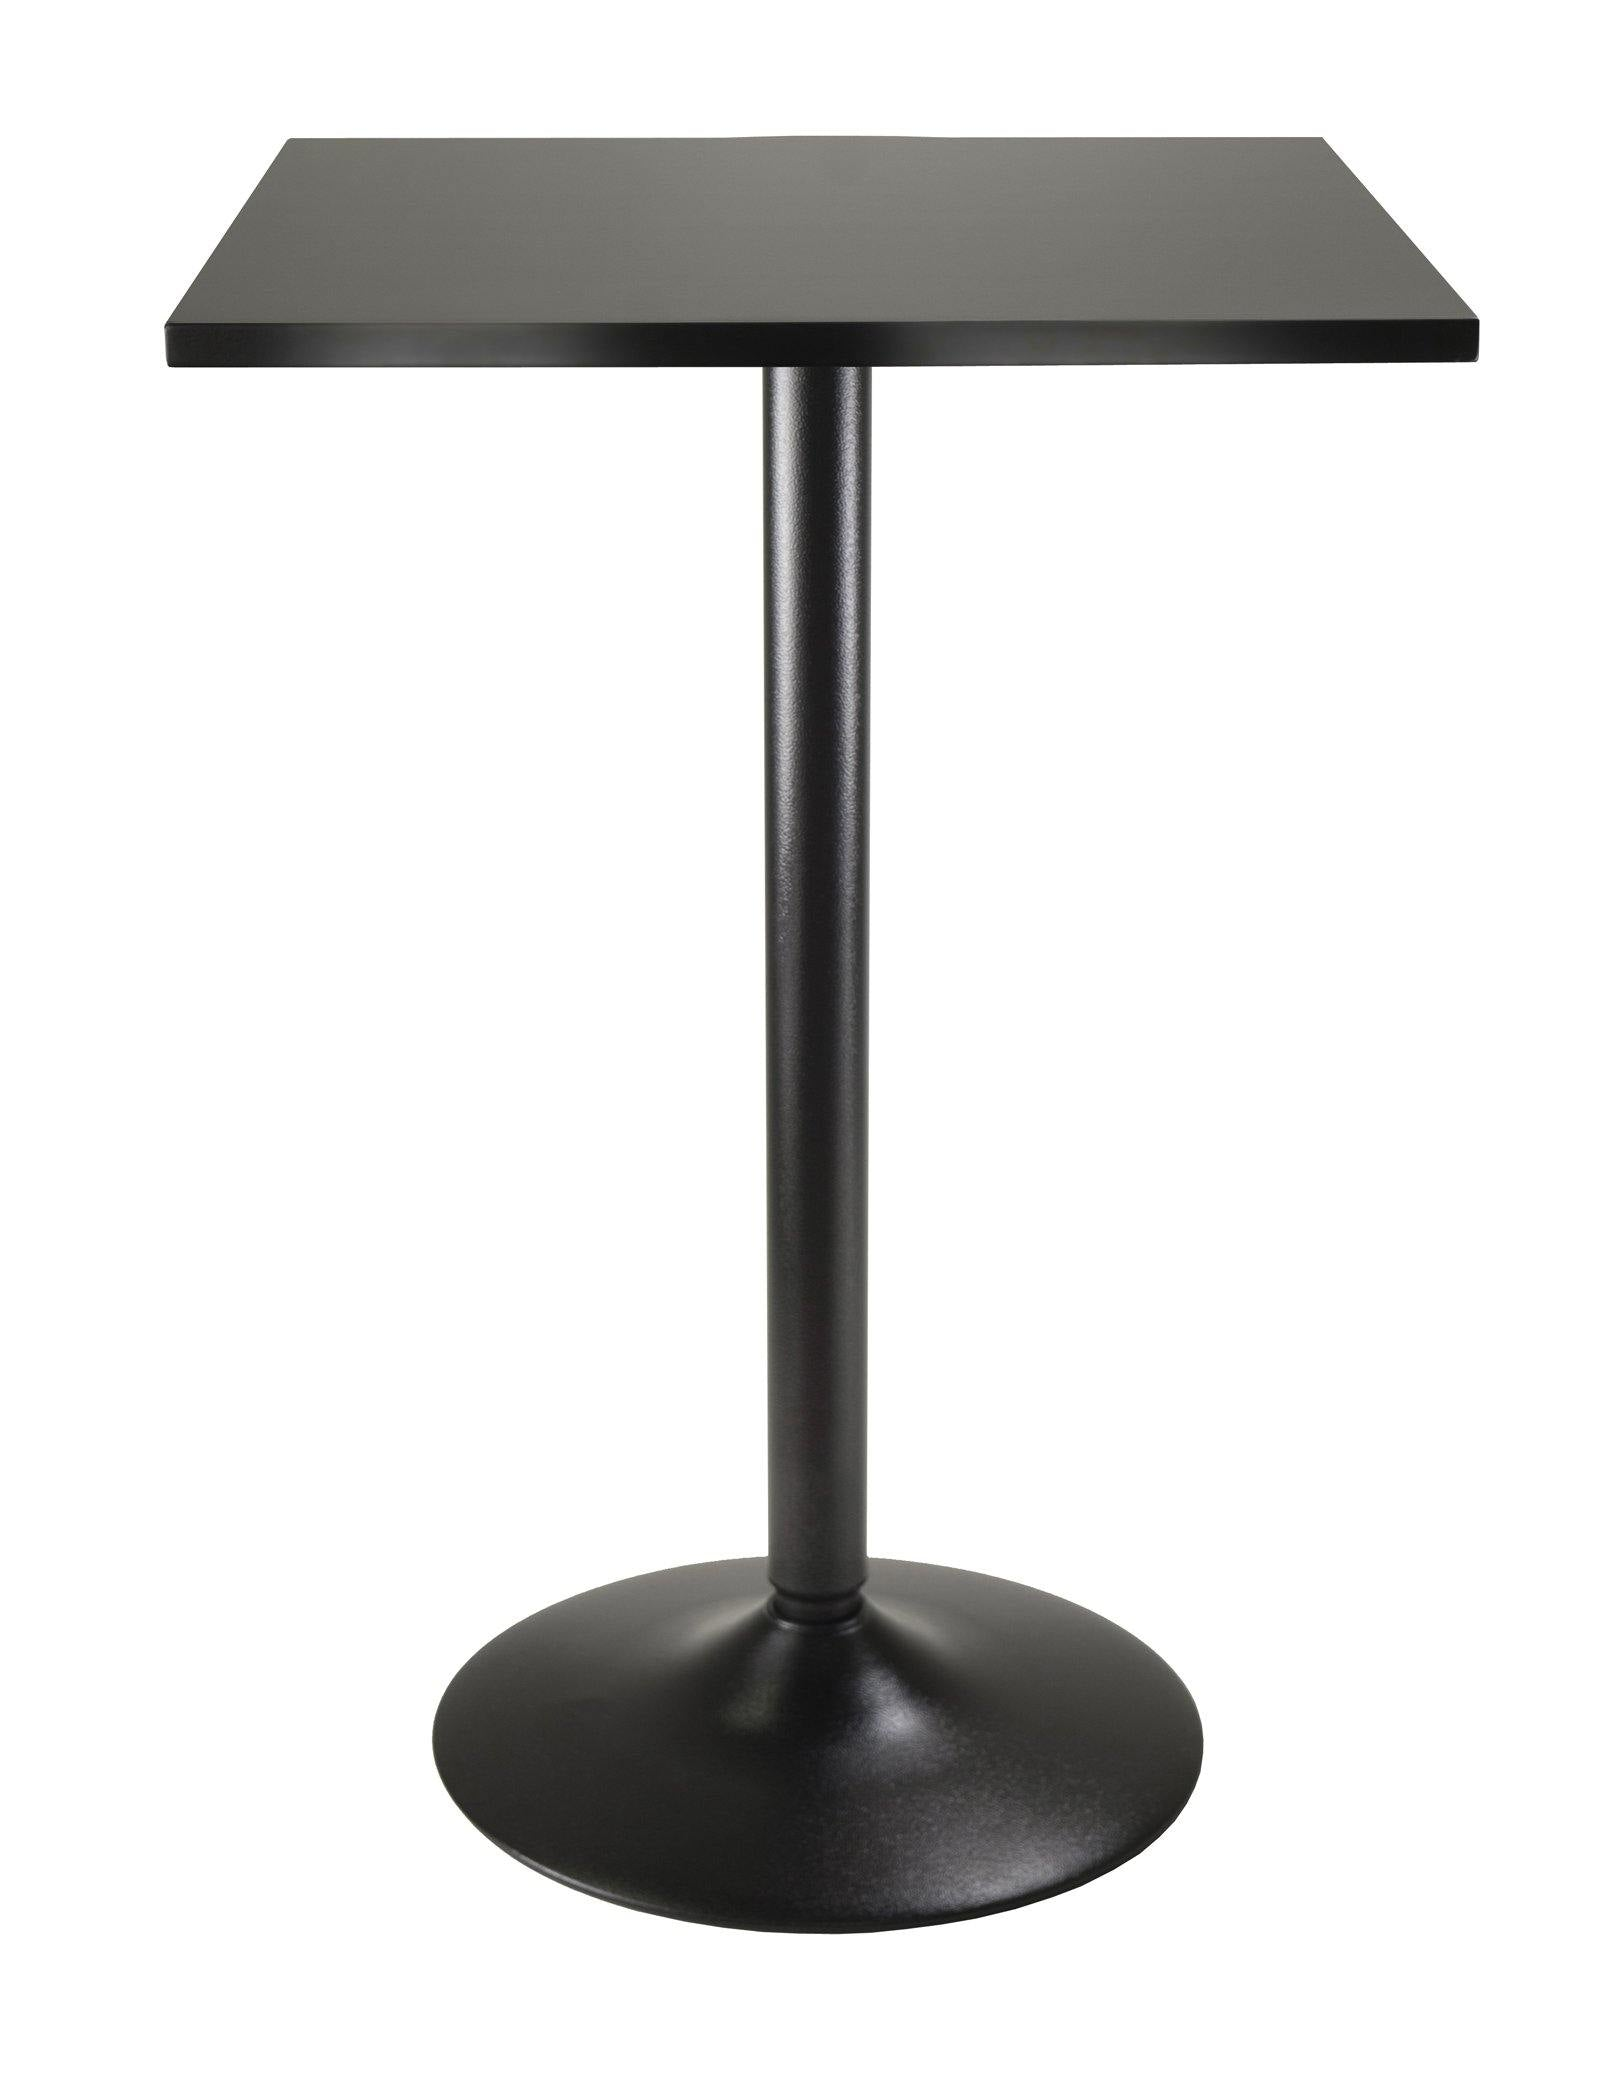 Obsidian Square Dining Table, Black - My USA Furniture